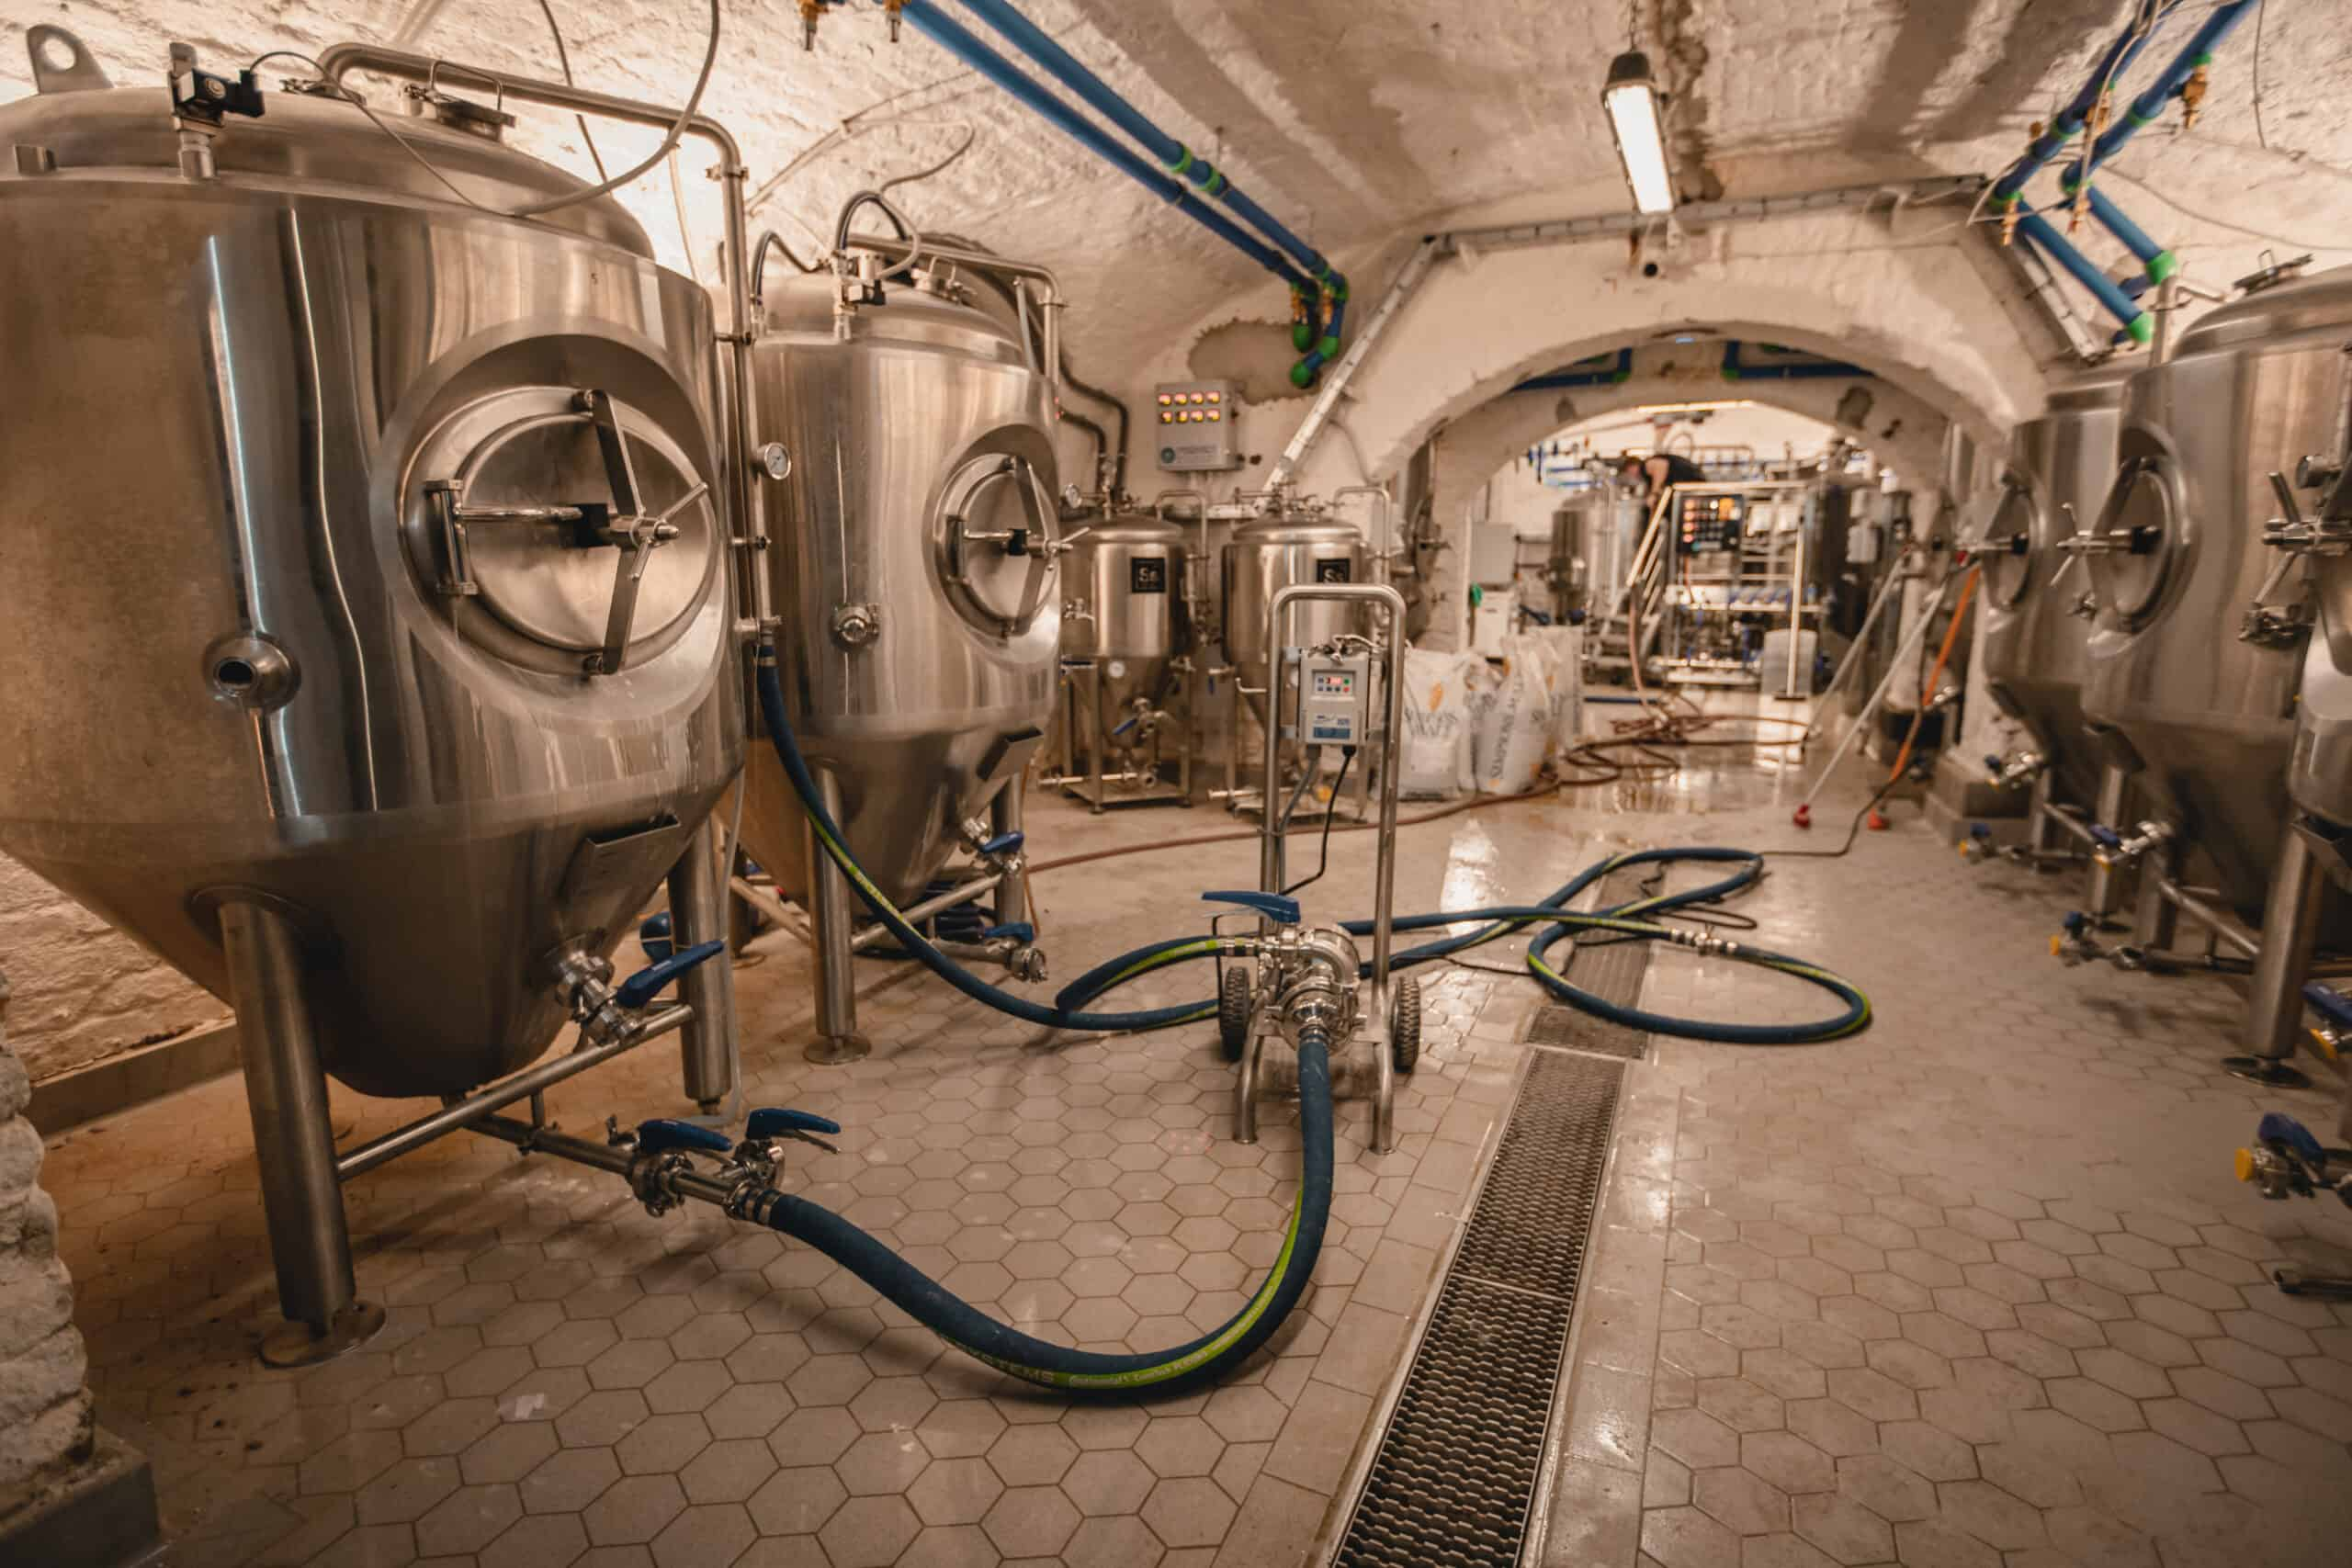 https://dev.gravitybp.com/wp-content/uploads/2020/11/Gravity-Brewing-Budapest-Craft-Beer-Homepage-Brewhouse-scaled.jpg